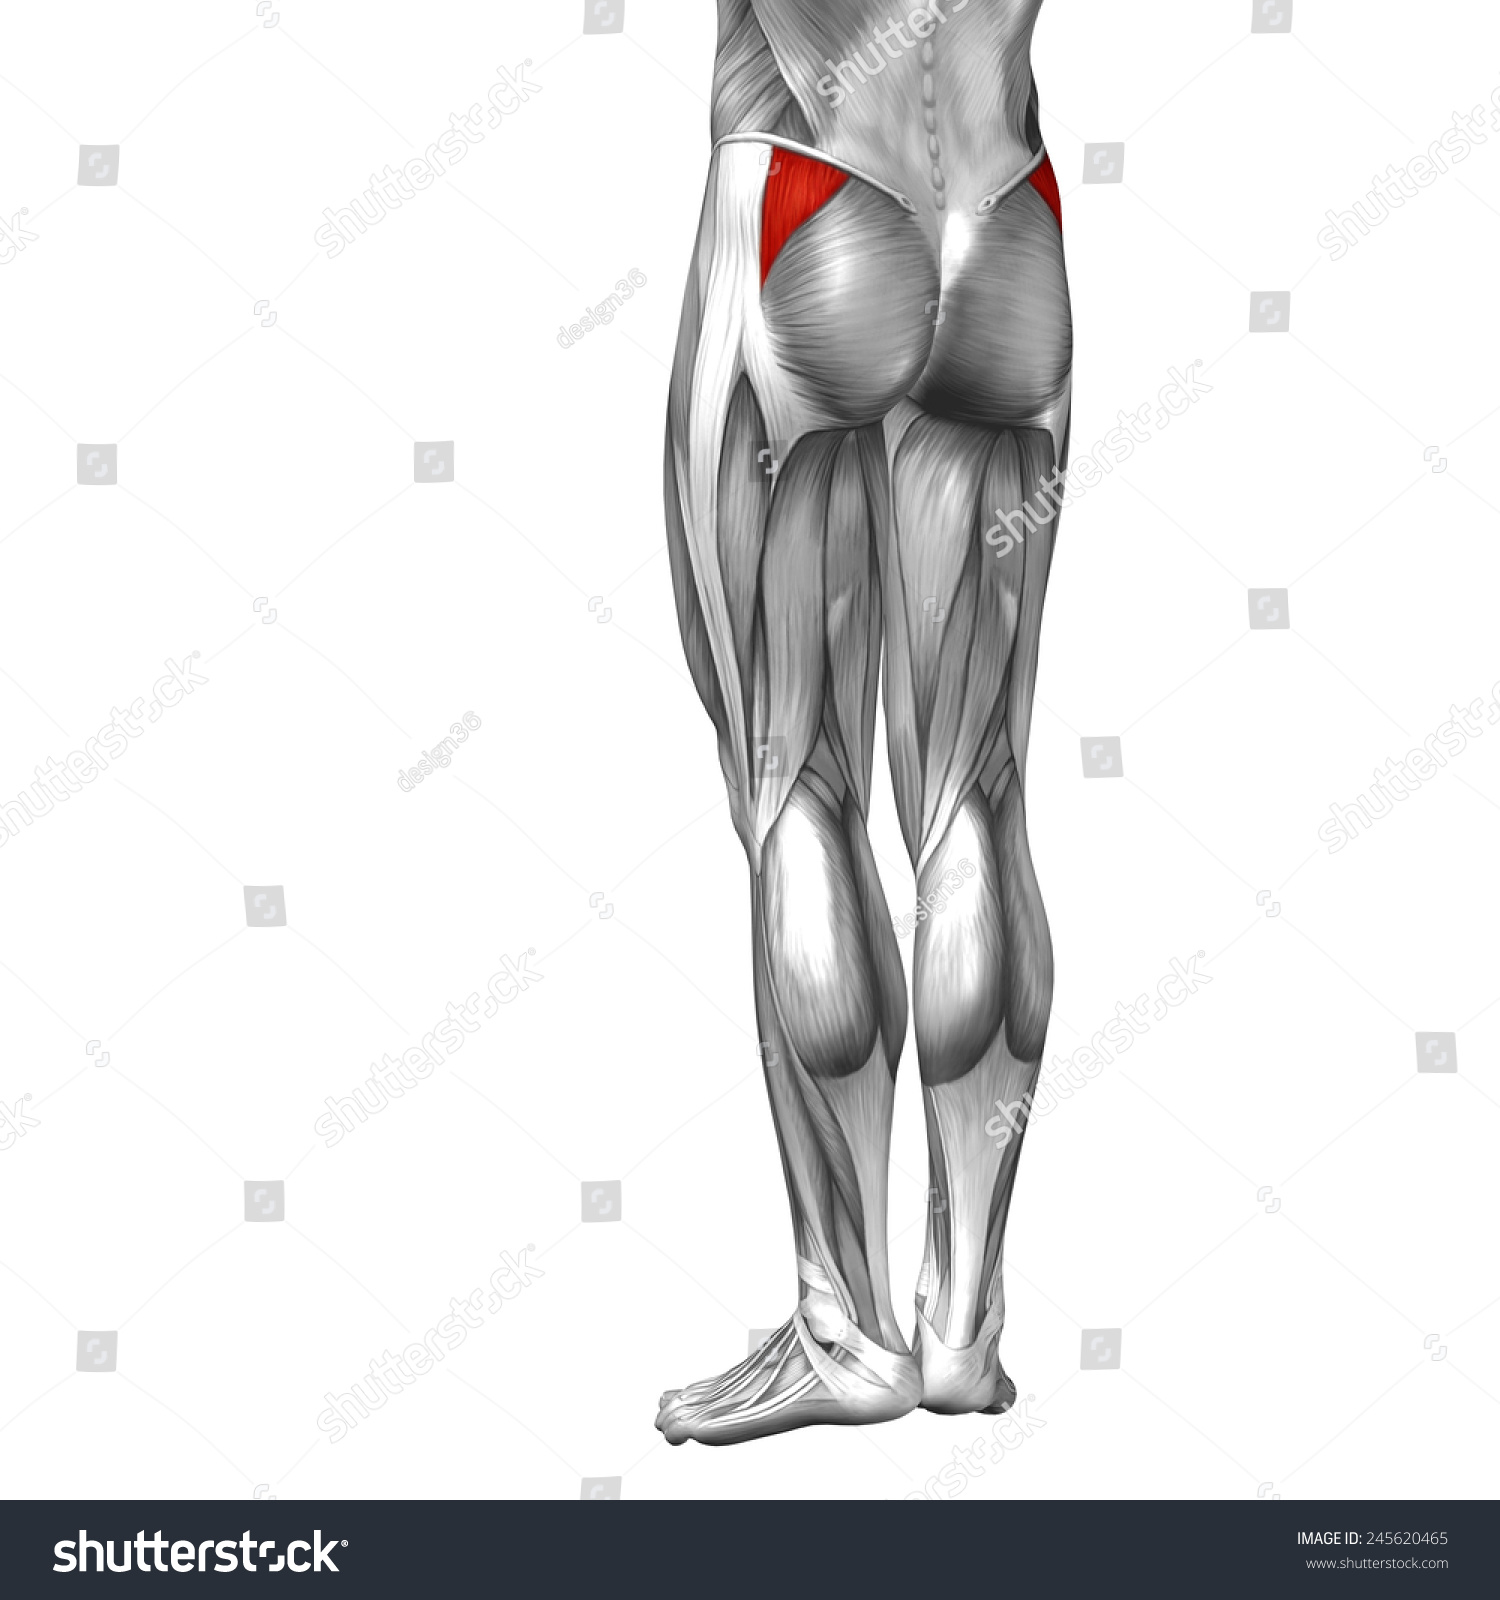 Conceptual 3 D Gluteus Medius Minimus Anatomical Stock Illustration